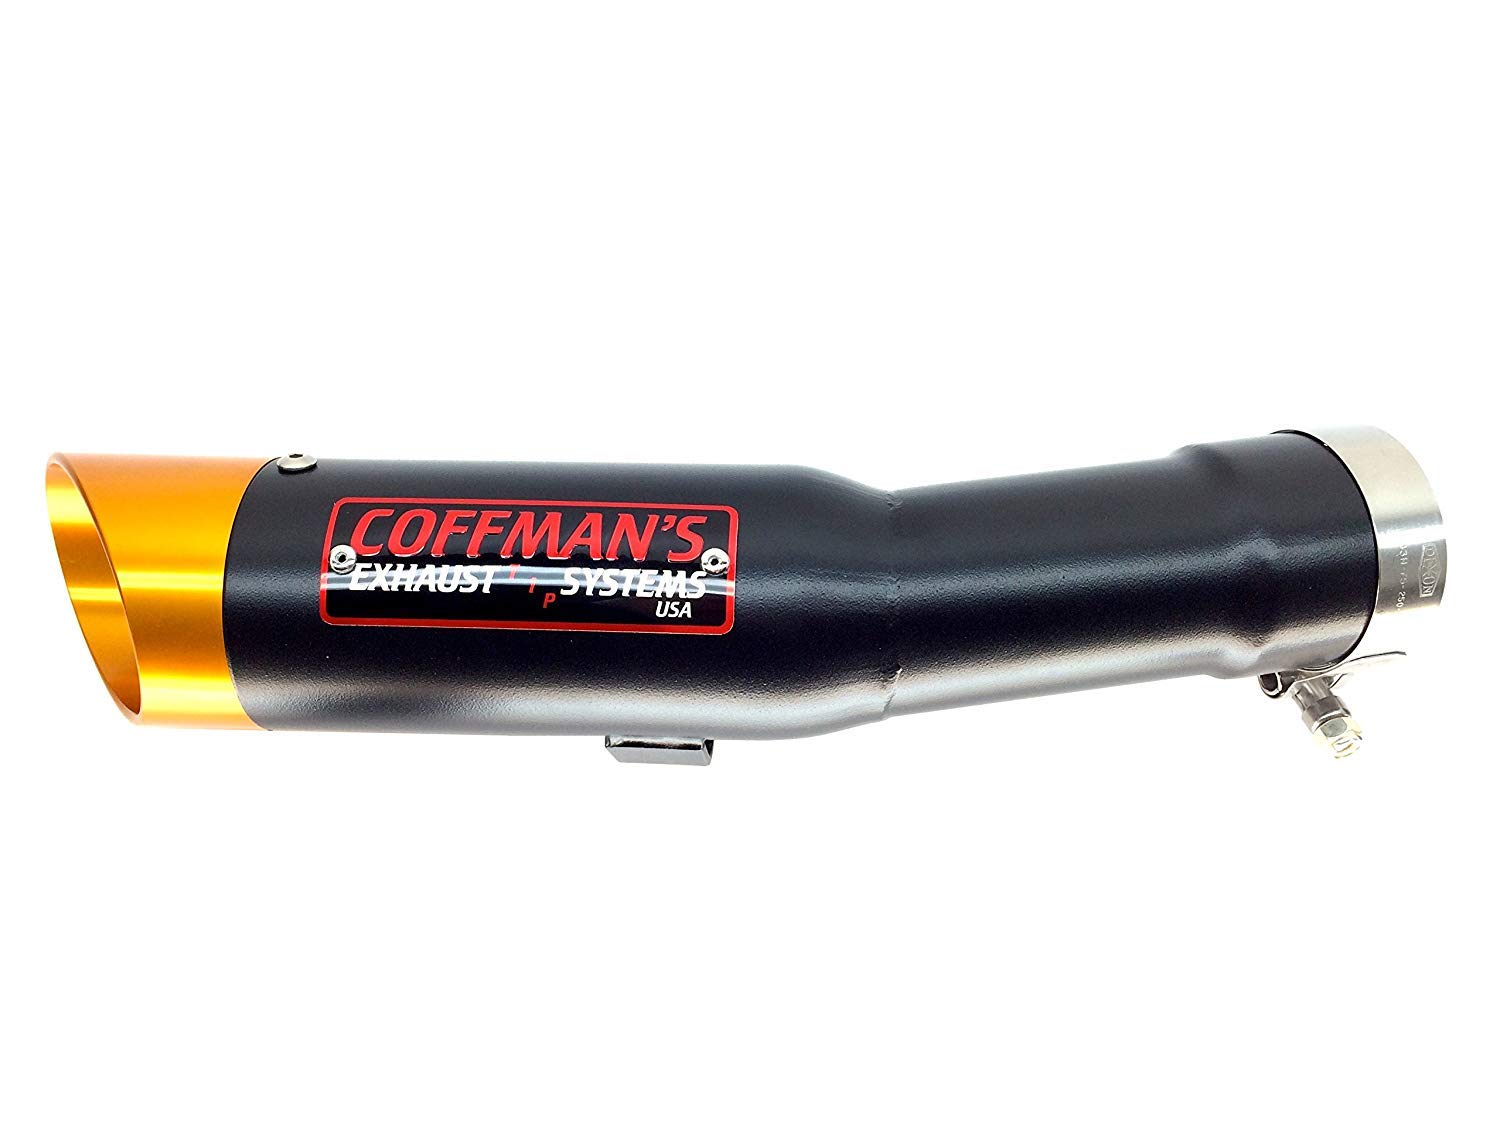 Coffmans Shorty Slip-On Exhaust for Yamaha FZ1 2001-2005 Sportbike with Polished Tip